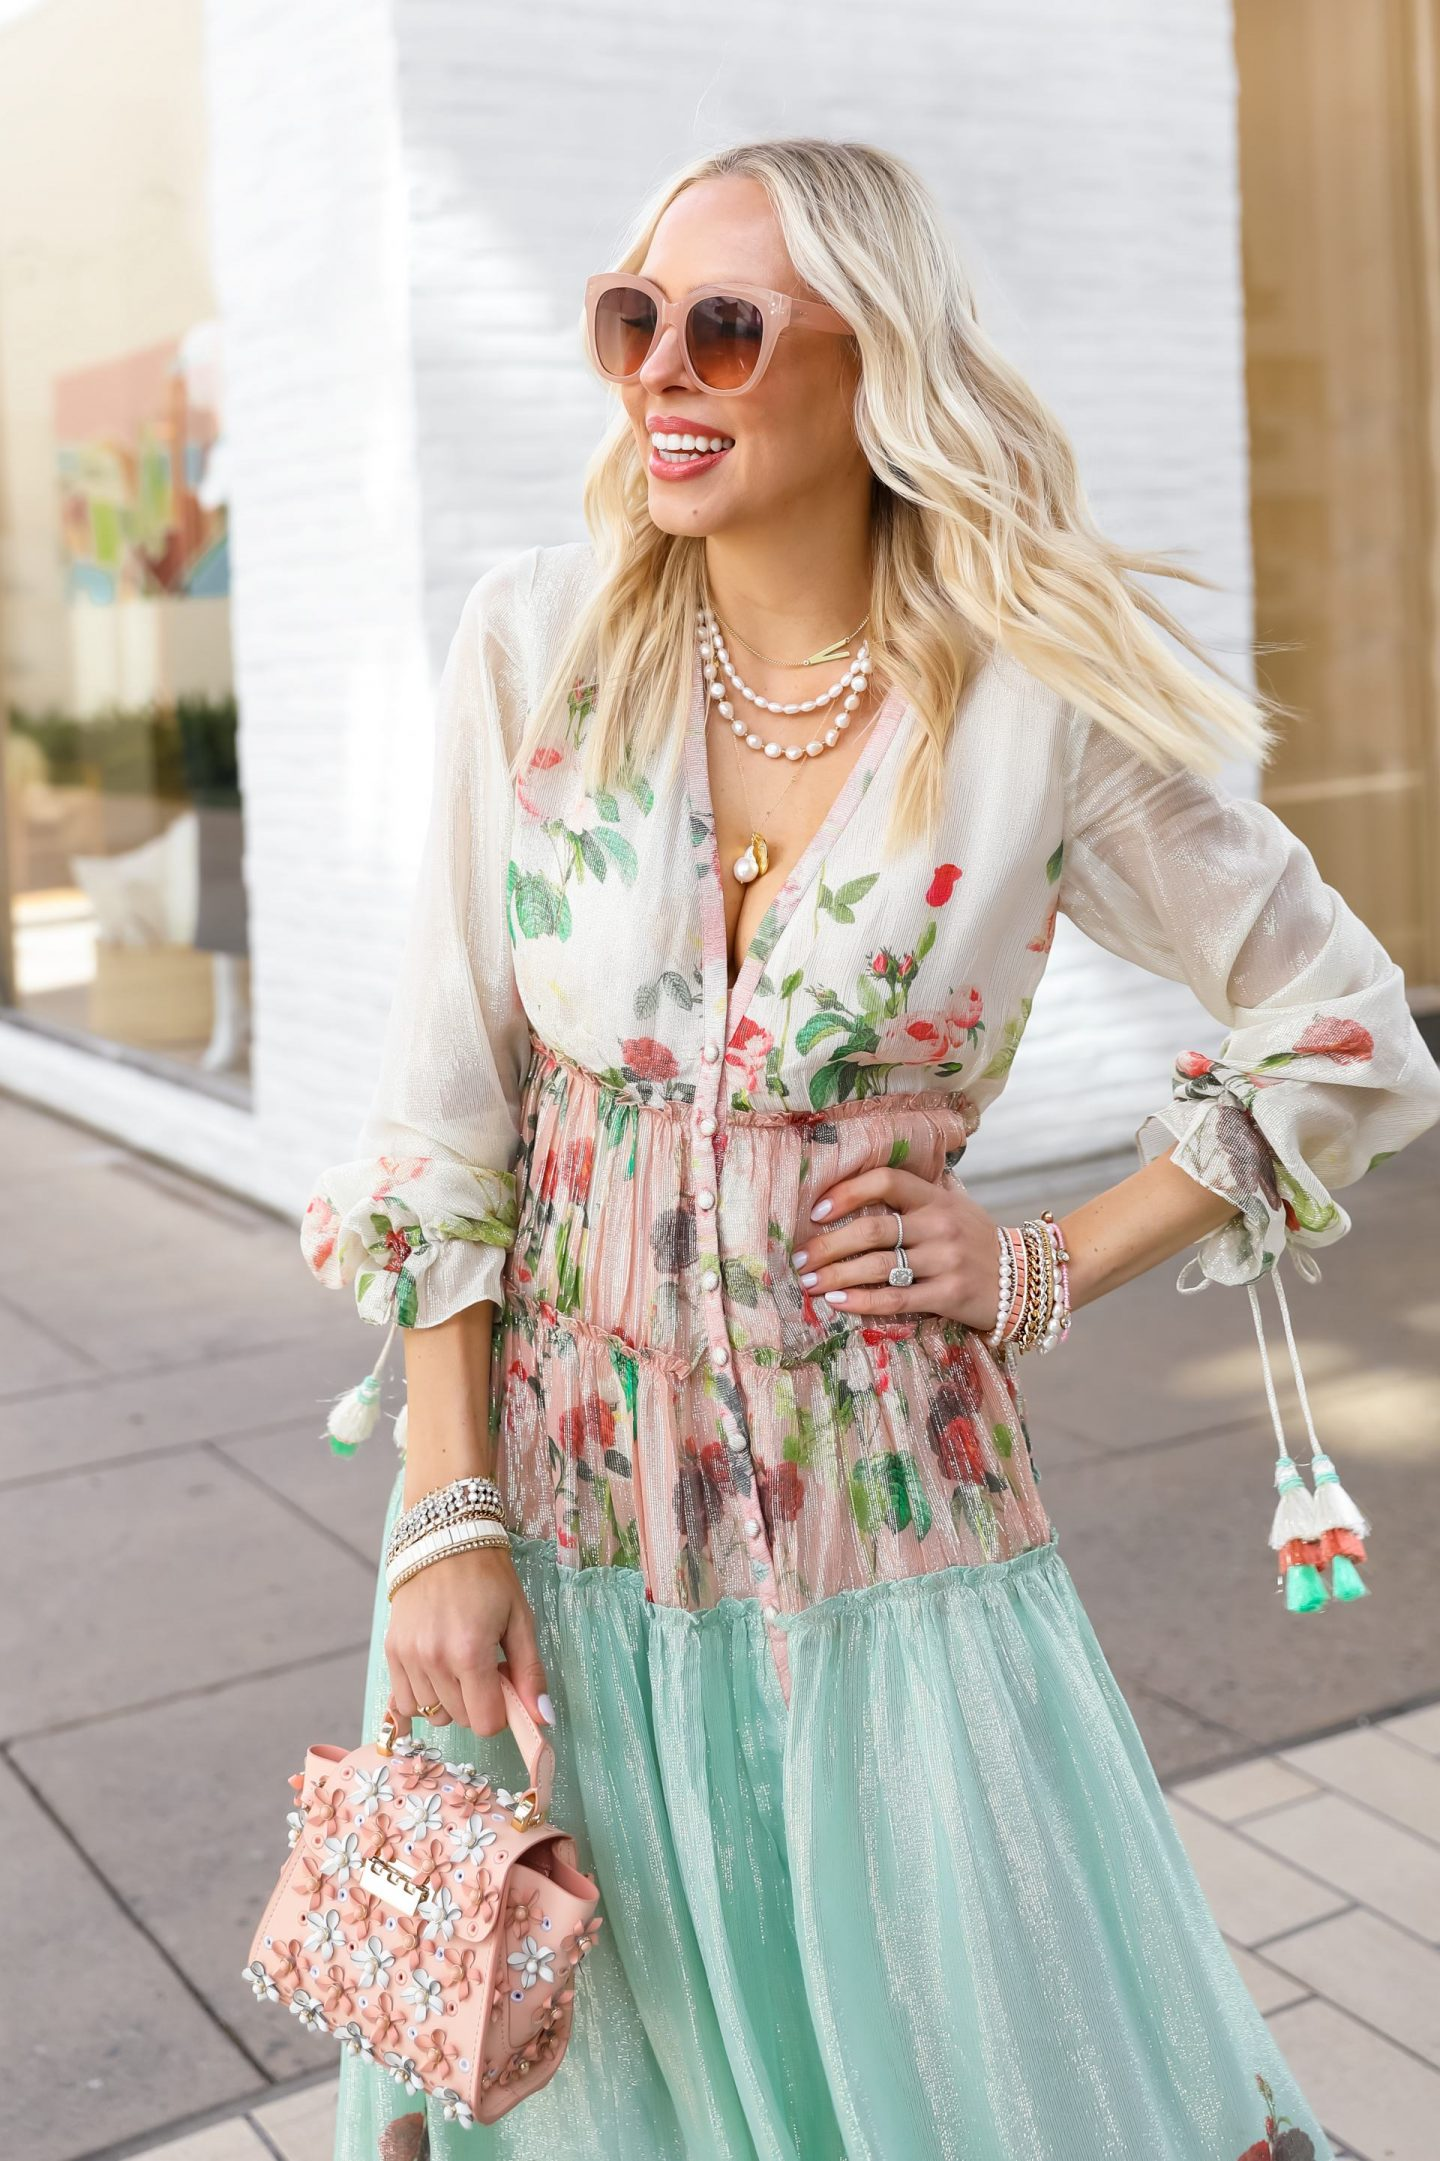 Easter style Rococo Sand pastel maxi dress with Victoria Emerson sale jewelry, by Lombard & Fifth Veronica Levy.